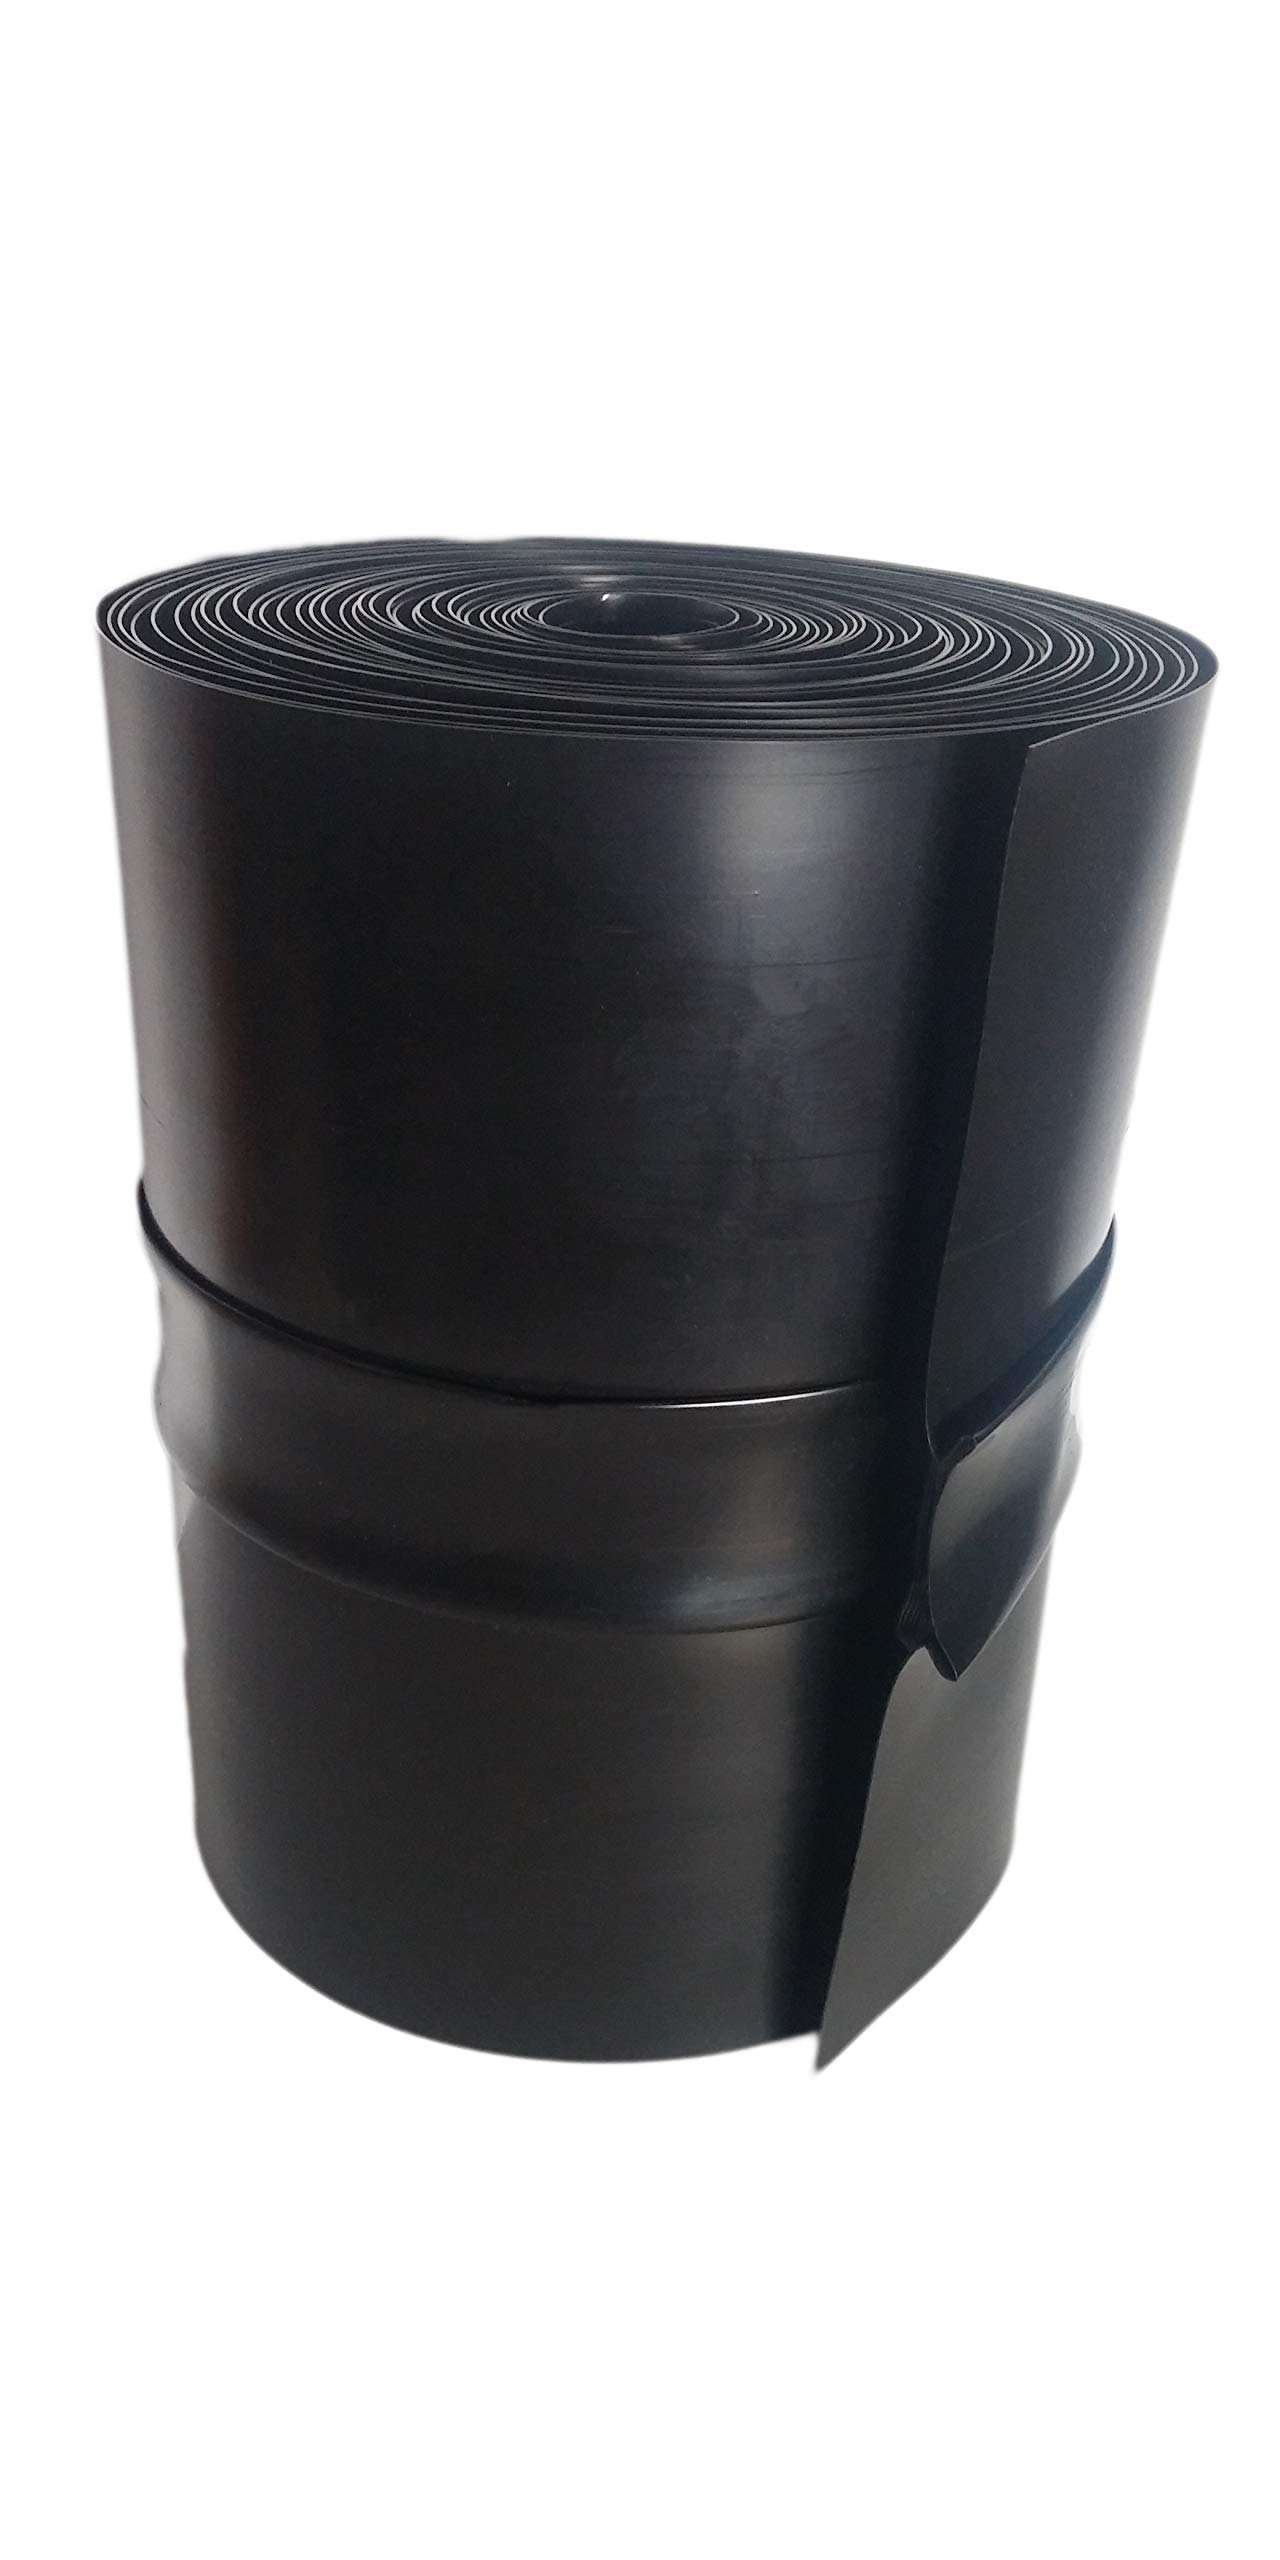 Goberco Under Deck Drainage System - Z/50/12 - Each roll 50' Long, for 12'' Joist spacing, 30 mils Thick Black lldpe